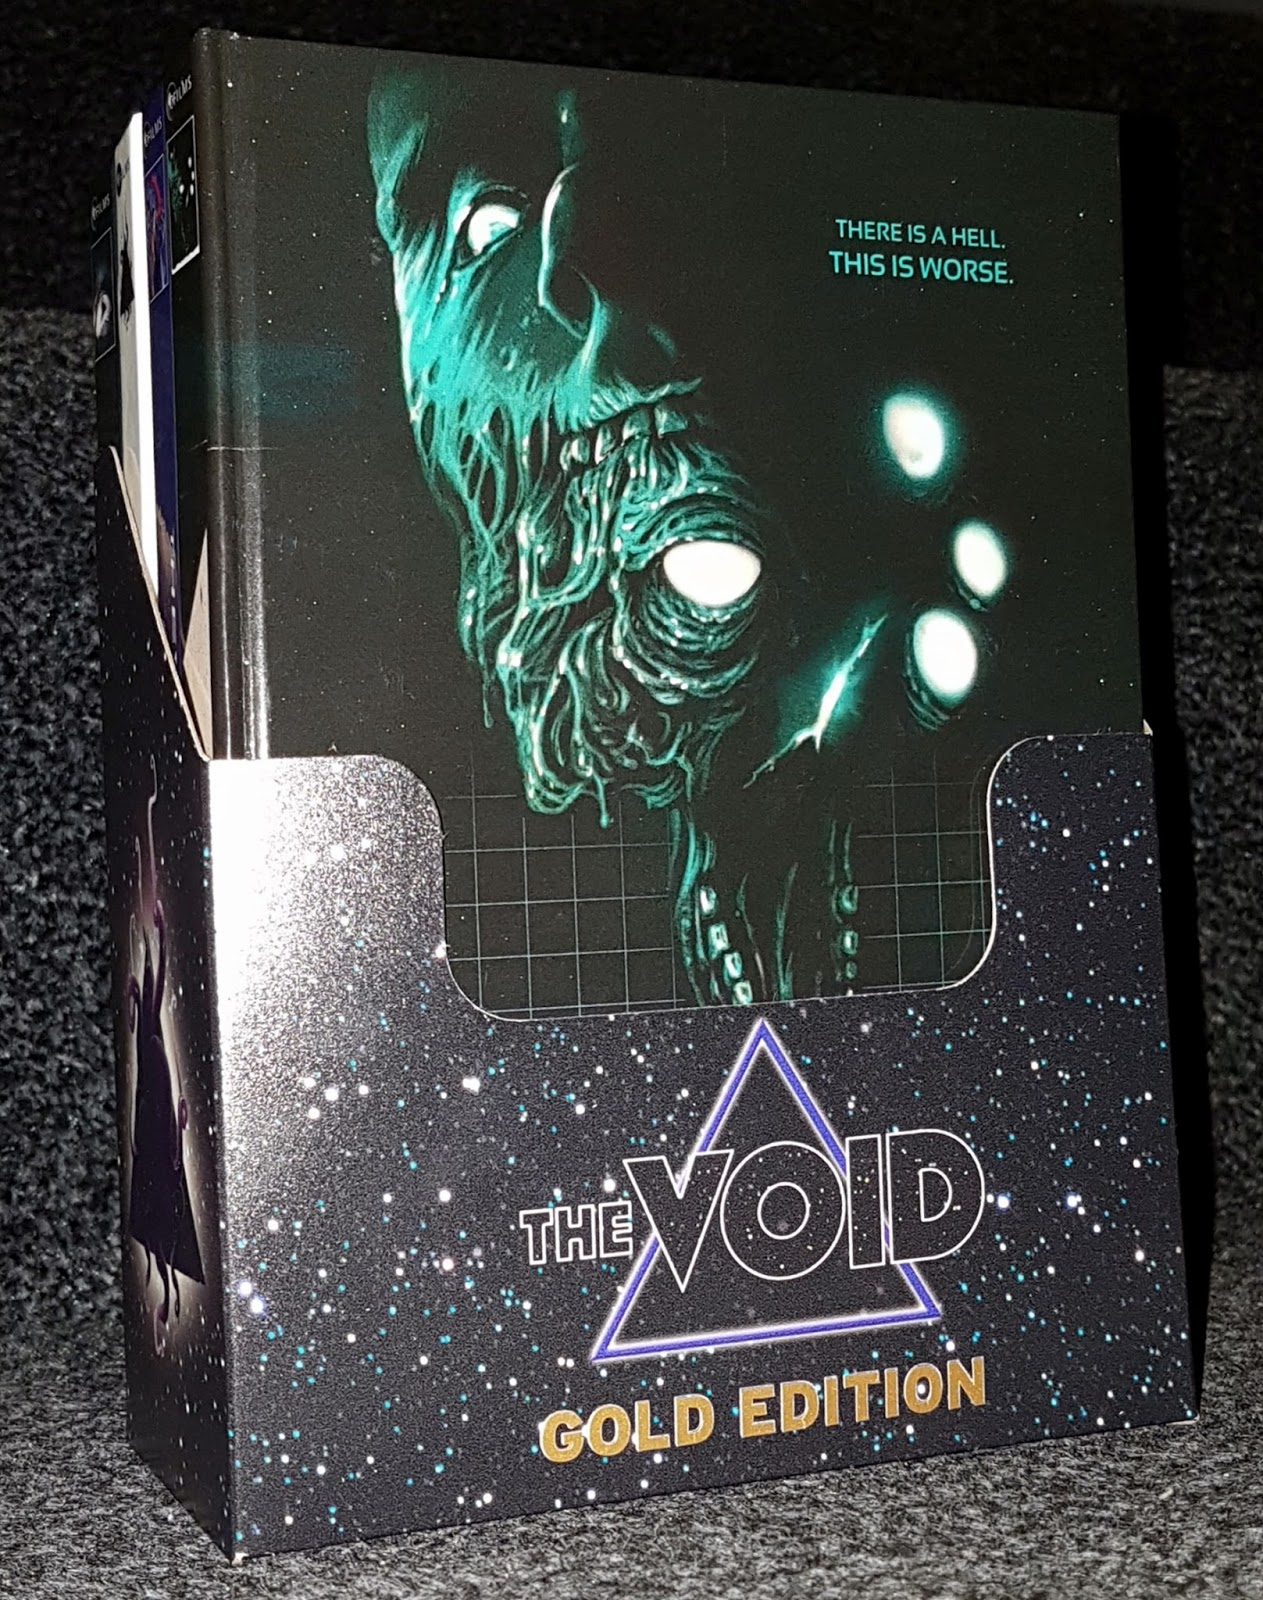 Collecting Asylum Asylum Unboxing The Void Gold Edition